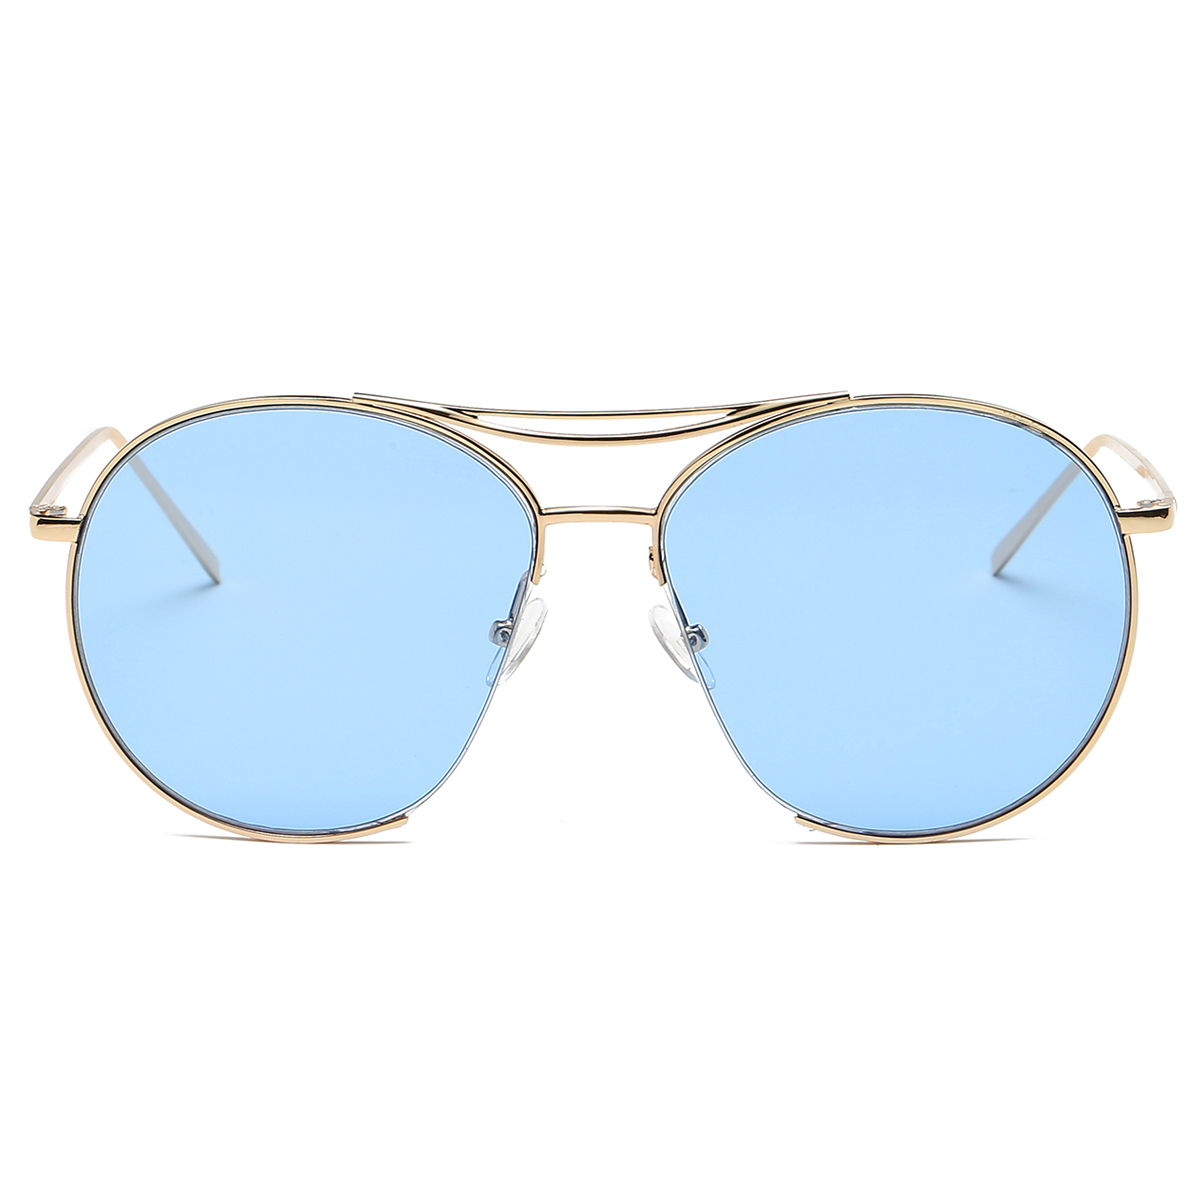 Trendy Aviator Style Sunglasses